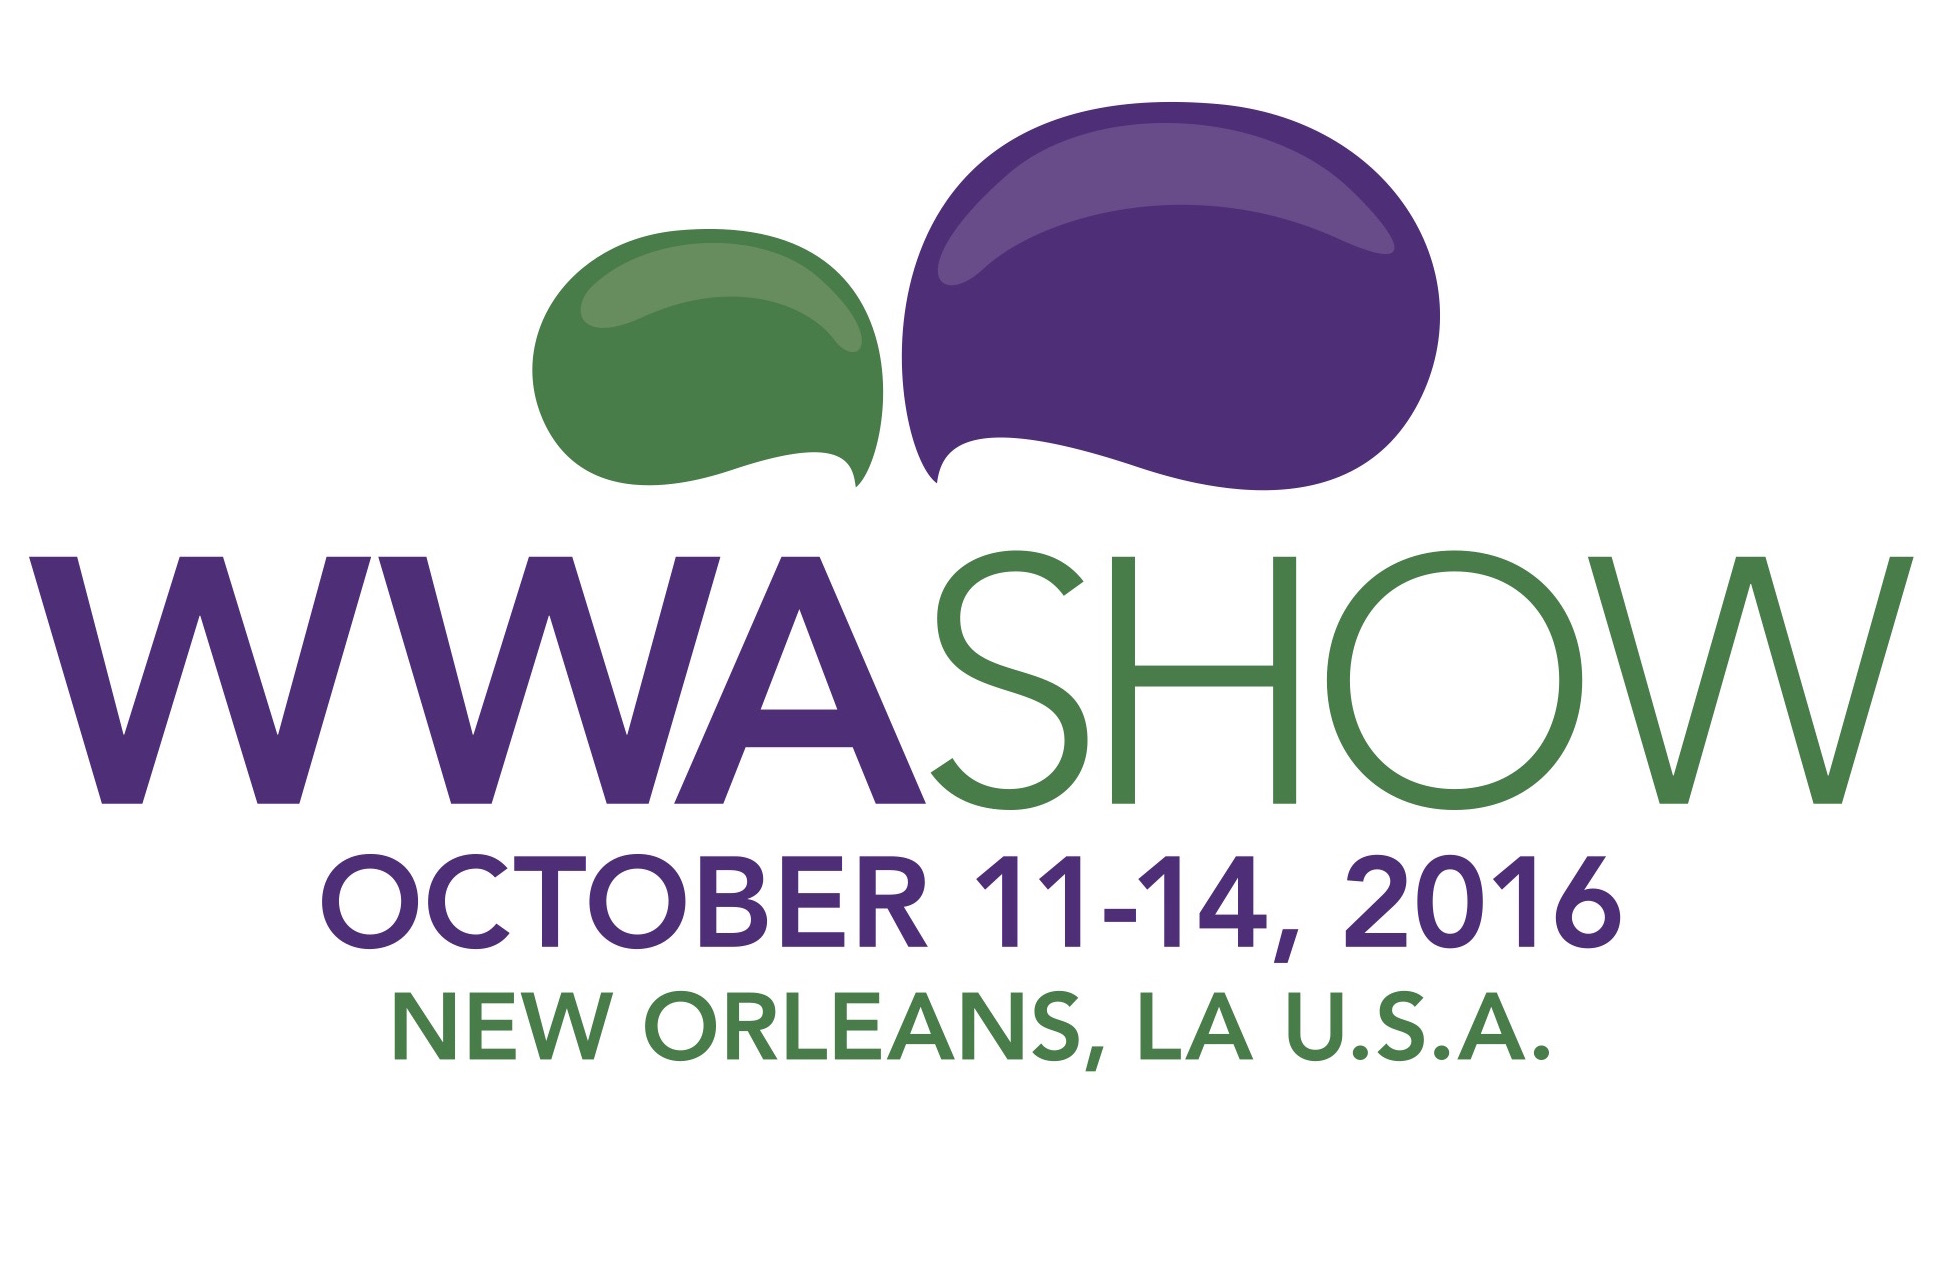 Display Event Wwa Annual Symposium Trade Show 2016